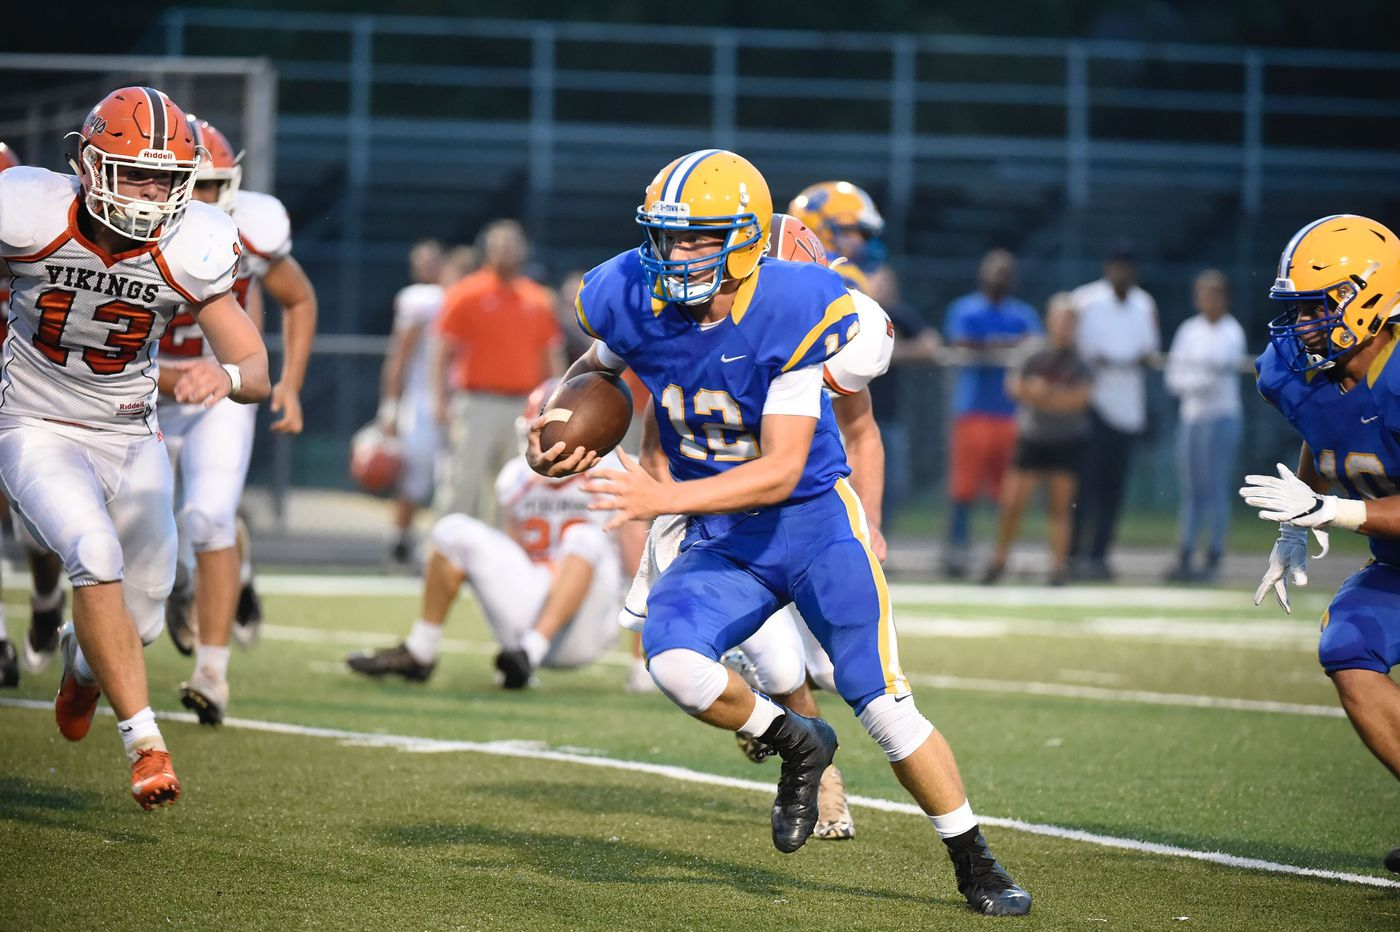 Luke Davis, Downingtown East ready for another battle with Downingtown West